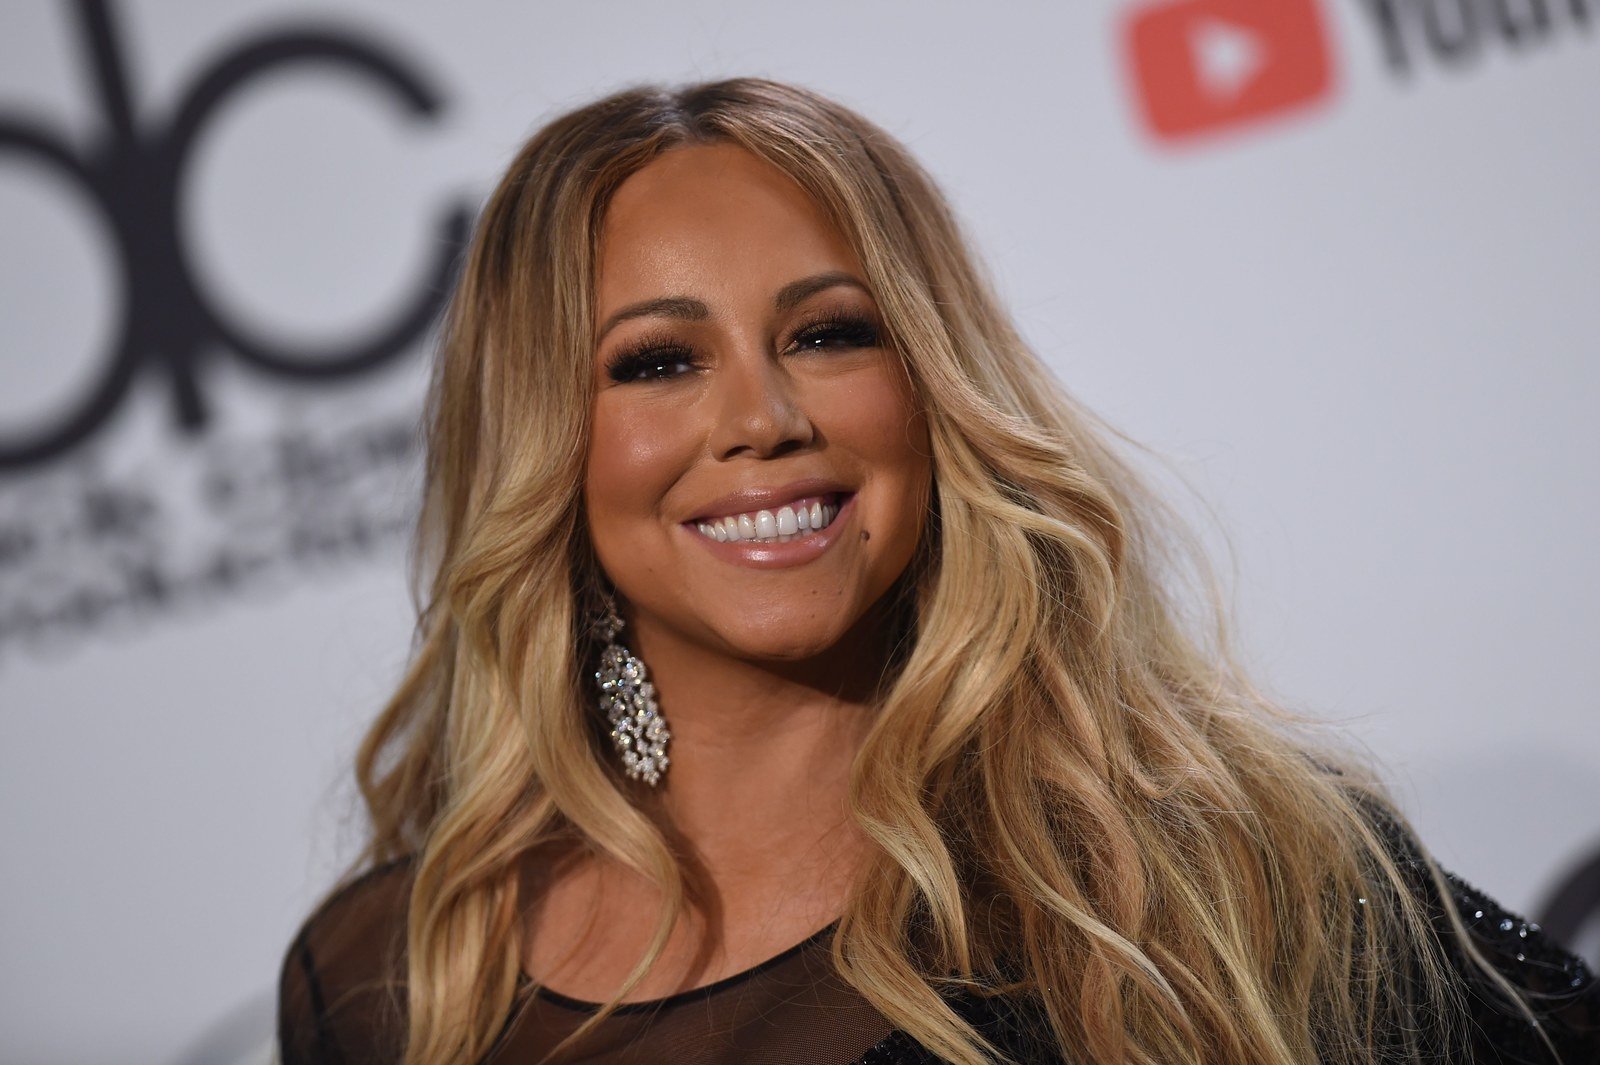 Mariah Carey Alleges Her Personal Assistant Secretly Filmed Her And Then Threatened To Sell The Footage